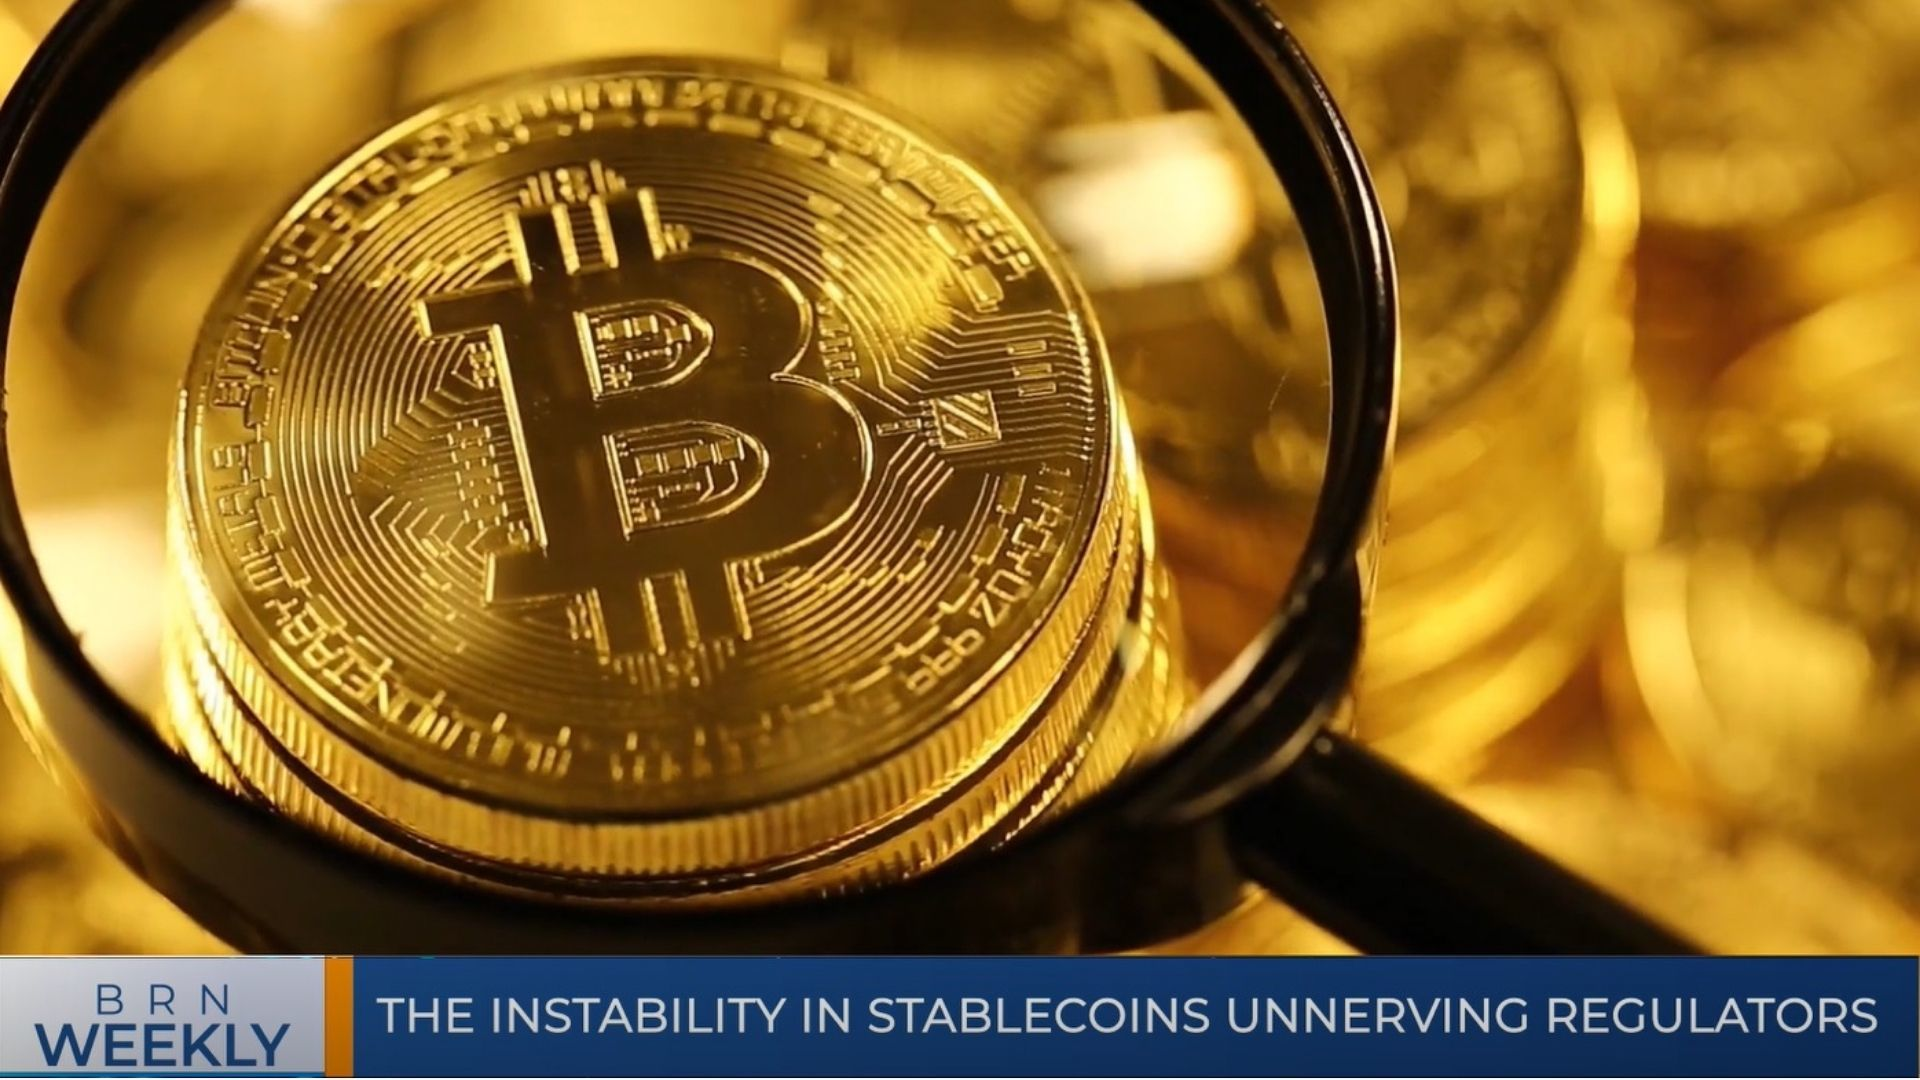 BRN Weekly | The instability in stablecoins unnerving regulators & our best segments for the week